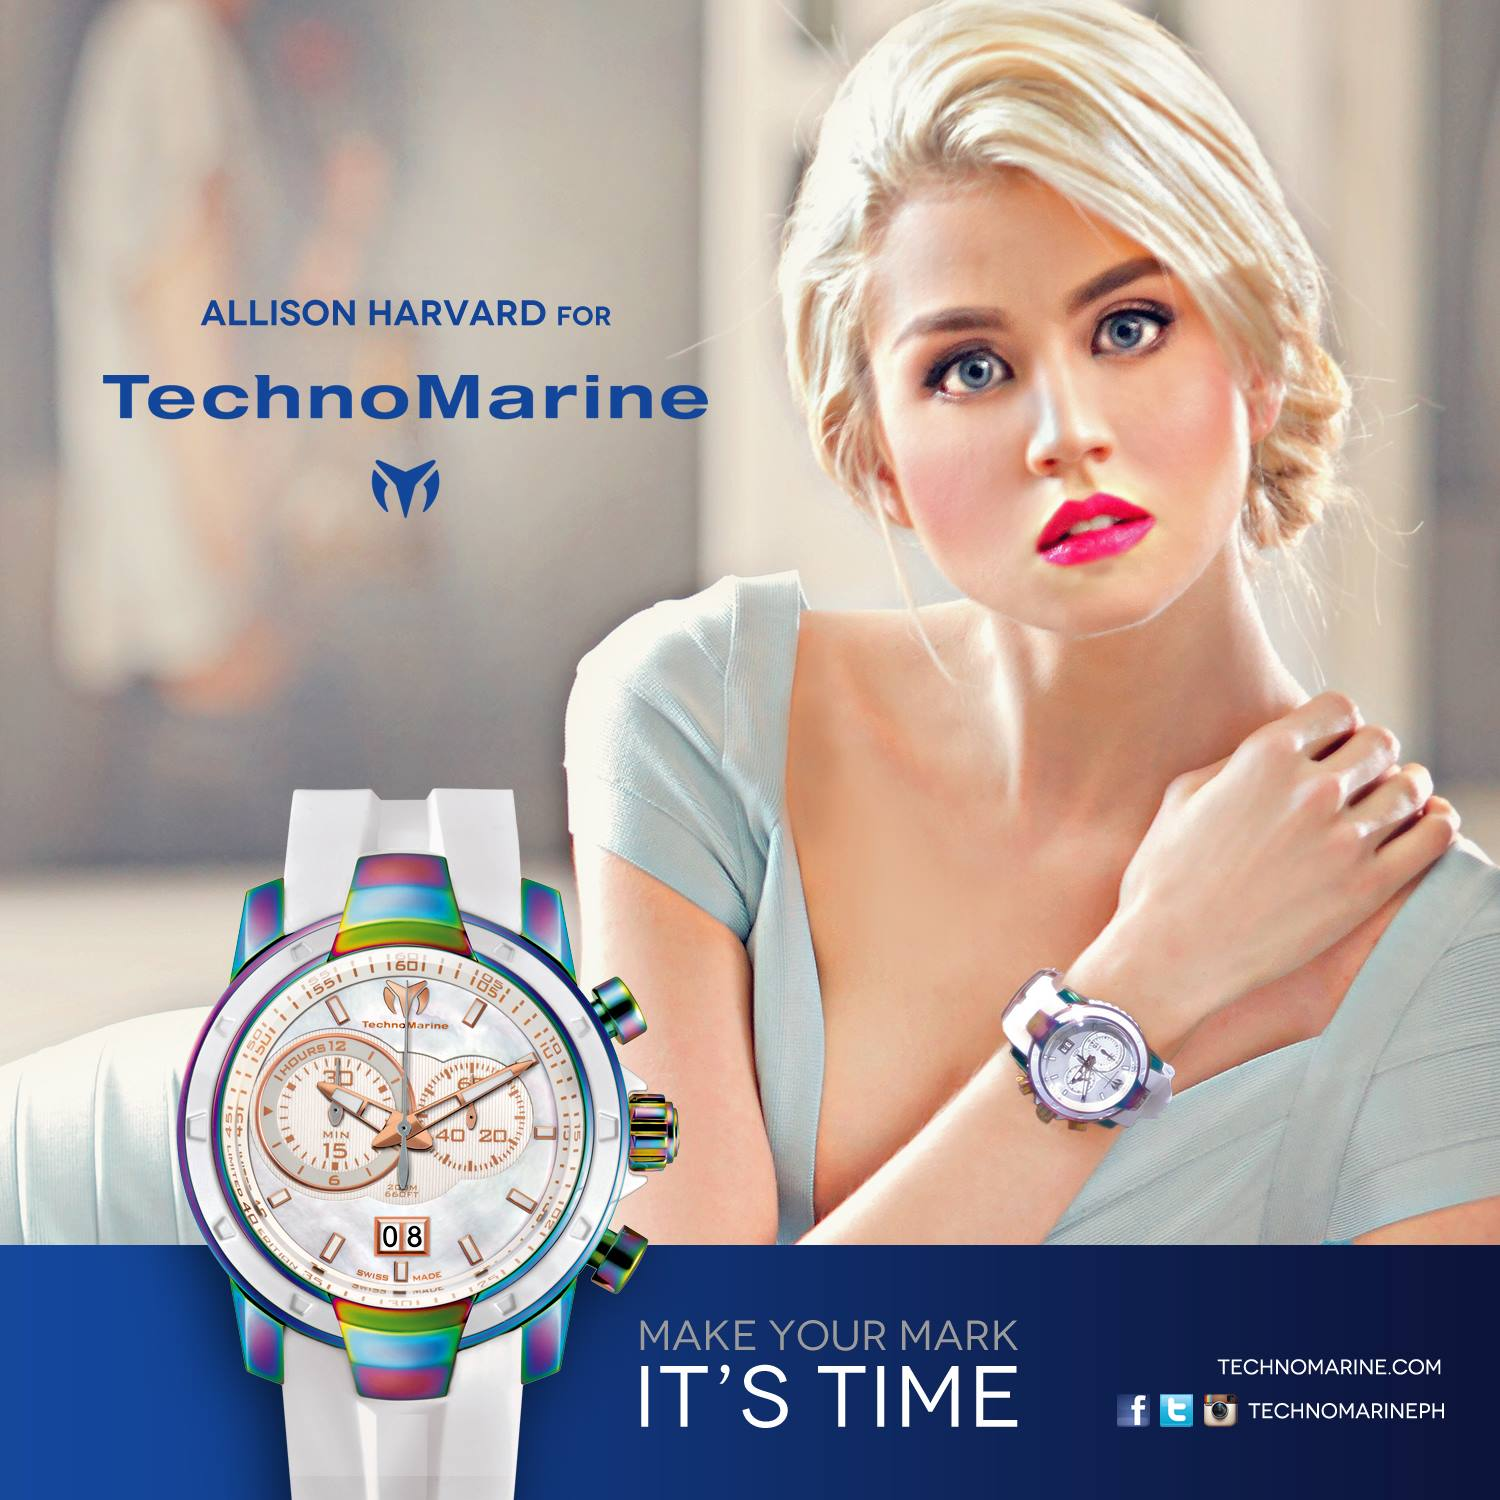 Allison Antm allison for technomarine - allison harvard photo (36825725